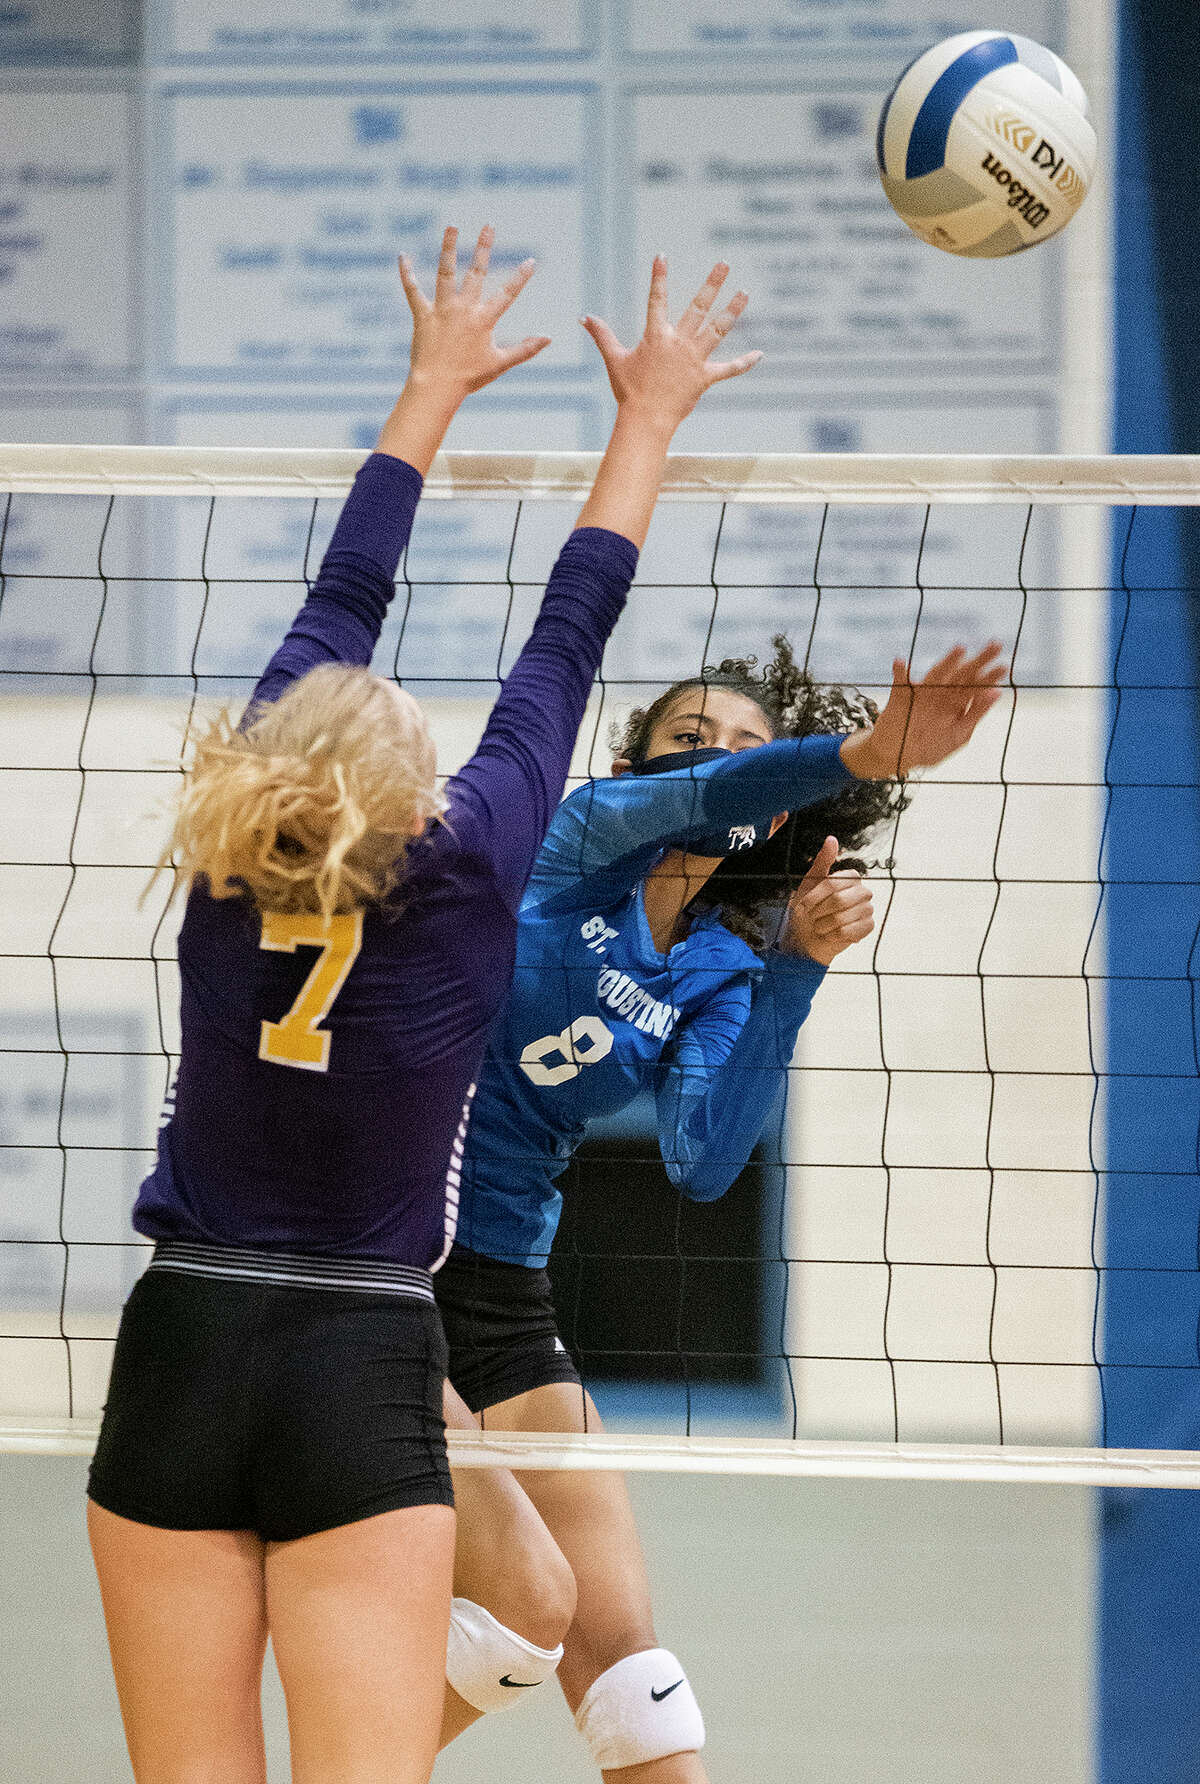 St. Augustine High School Aryana Ledet gets the ball over the net during a game against Carrizo Springs High School Tuesday, Sep. 15, 2020, at St. Augustine High School.